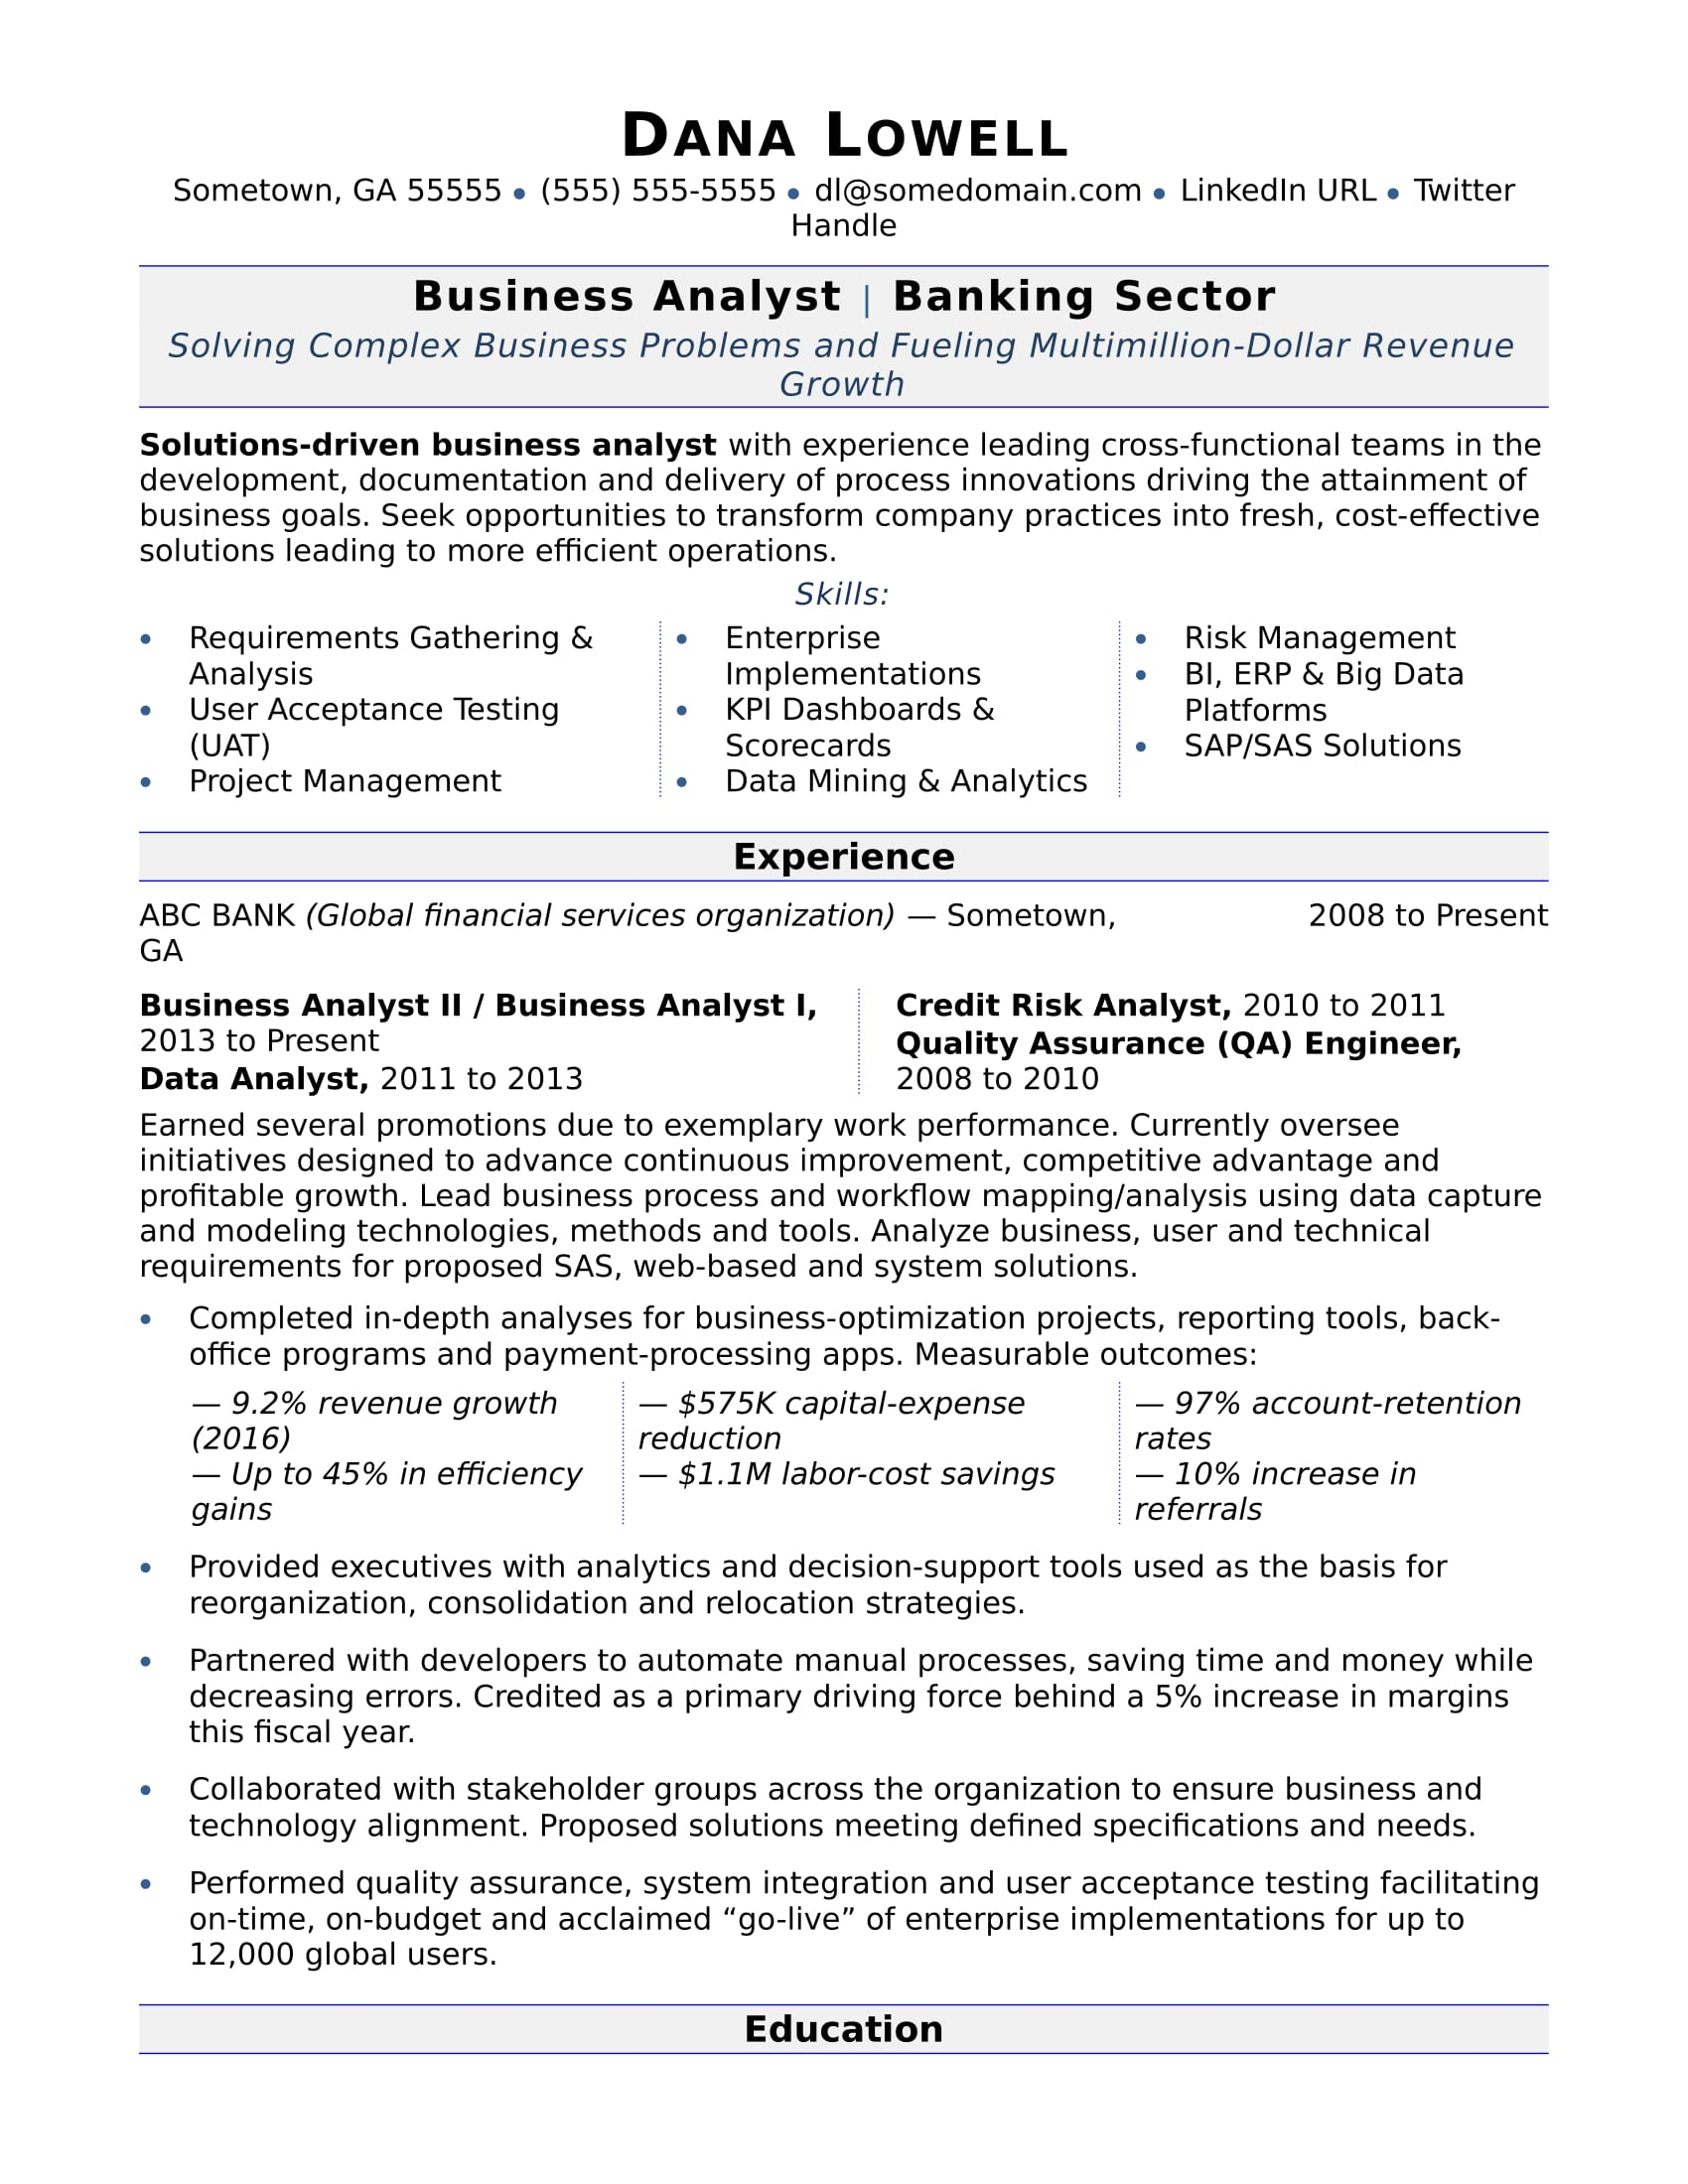 Business analyst resume sample monster business analyst resume sample wajeb Choice Image